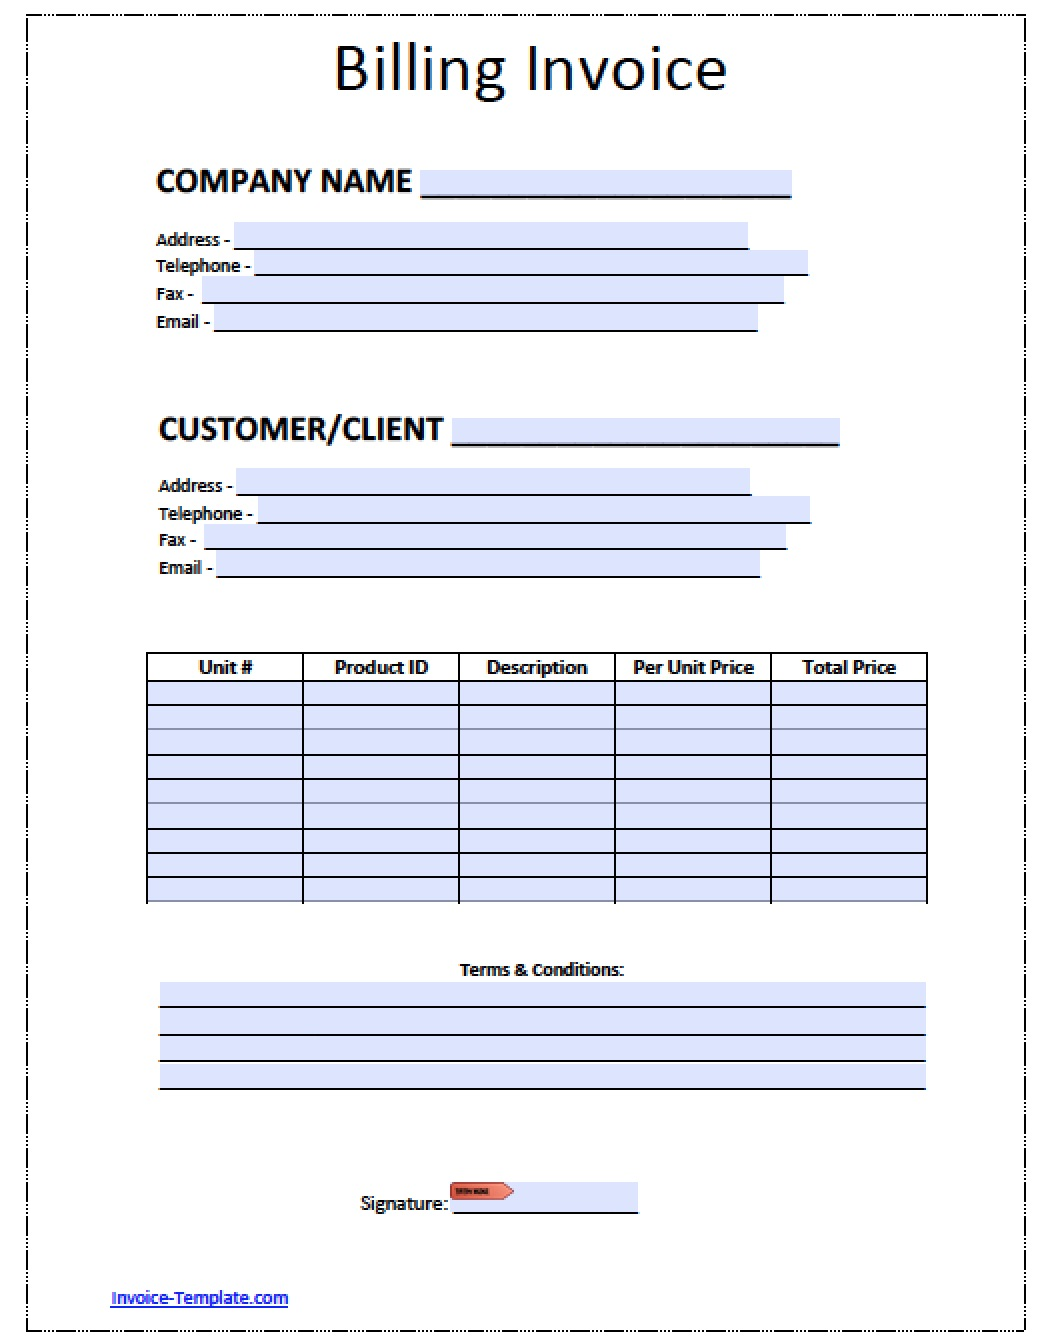 Free Billing Invoice Template Excel PDF Word Doc - Invoice paid template